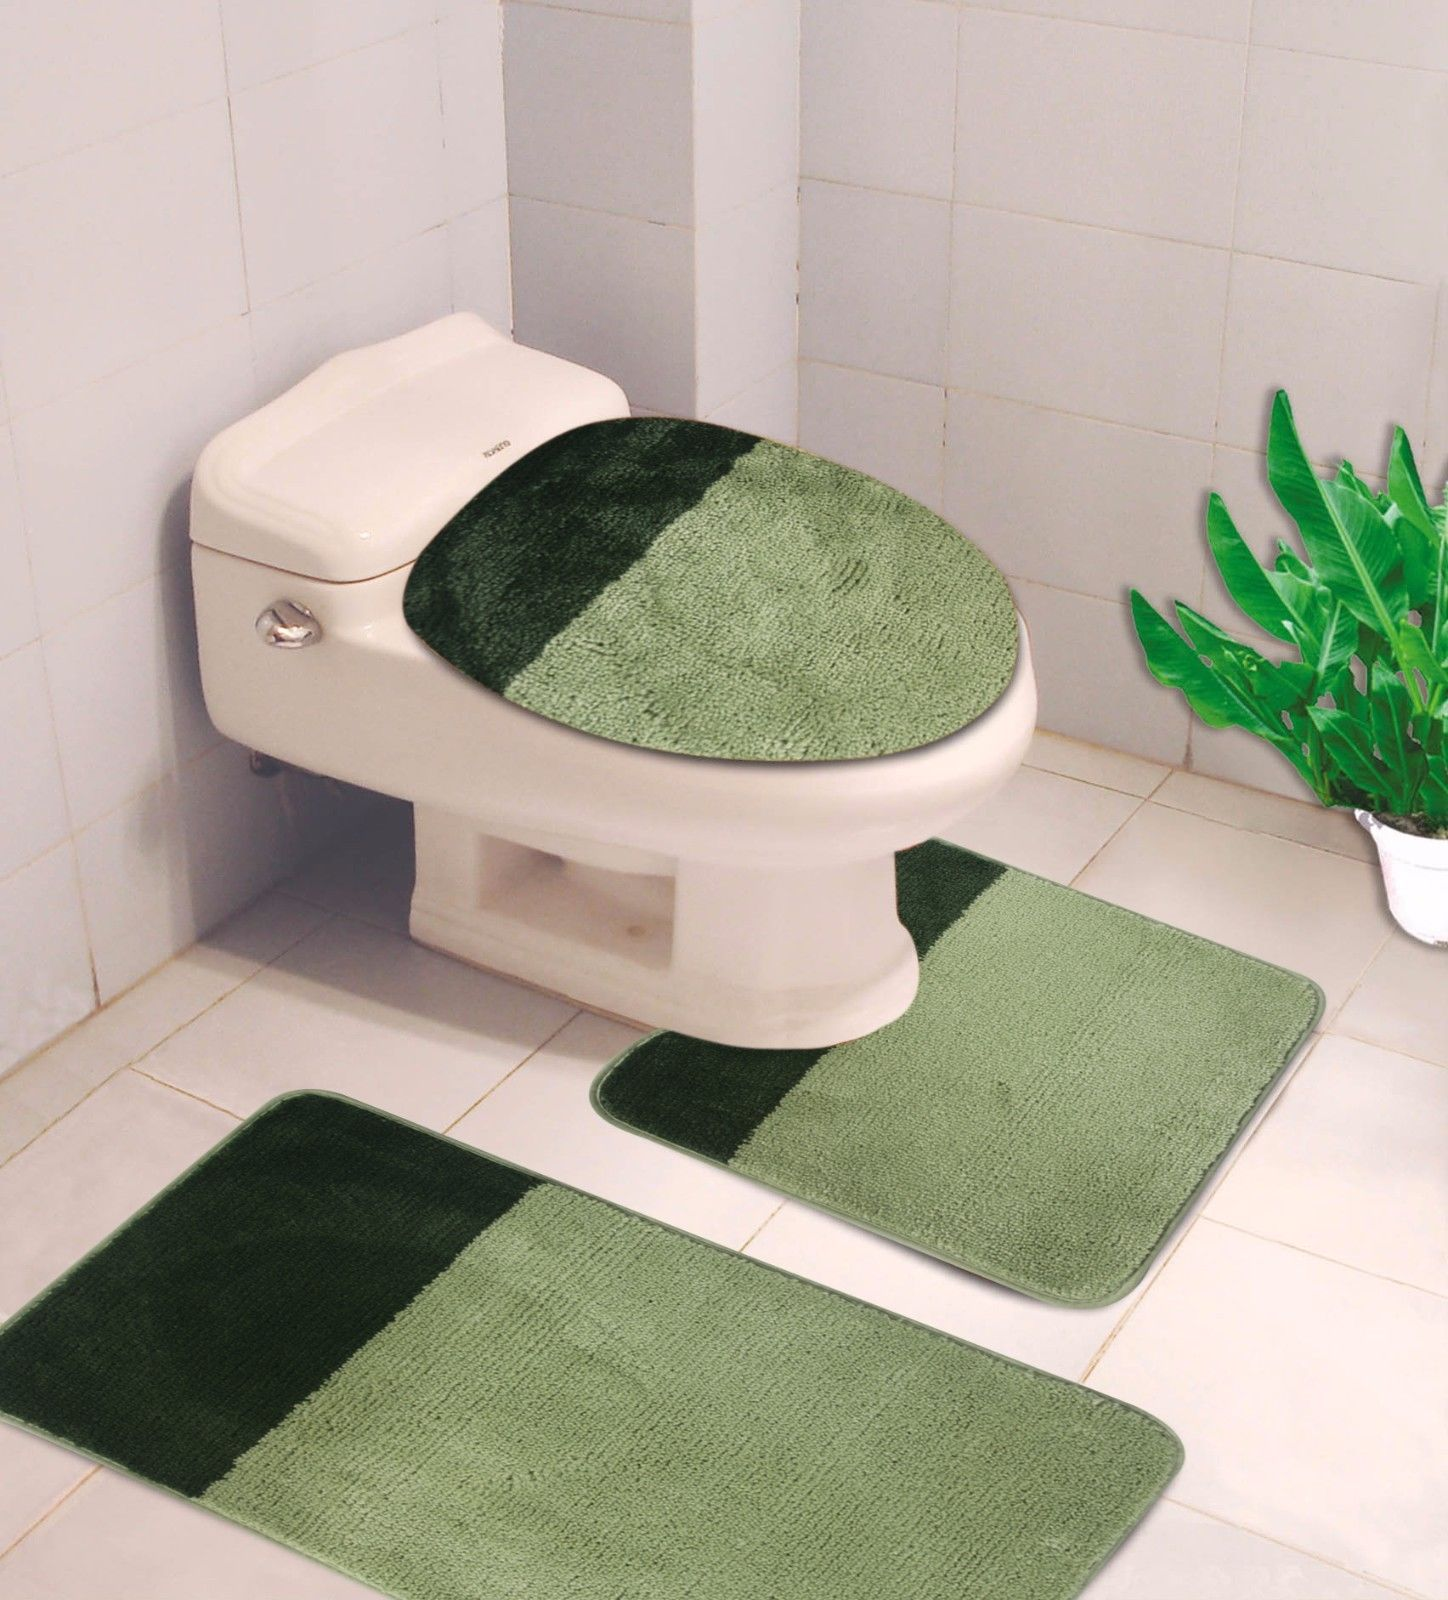 """3-PC (#7) 2 Tone Sage/Hunter Green HIGH QUALITY Jacquard Bathroom Bath Rug Set Washable Anti Slip Rug 18""""x28"""", Contour Mat 18""""x18"""" and Toilet Seat Lid Cover 18""""x19"""" with Non-Skid Rubber Back"""